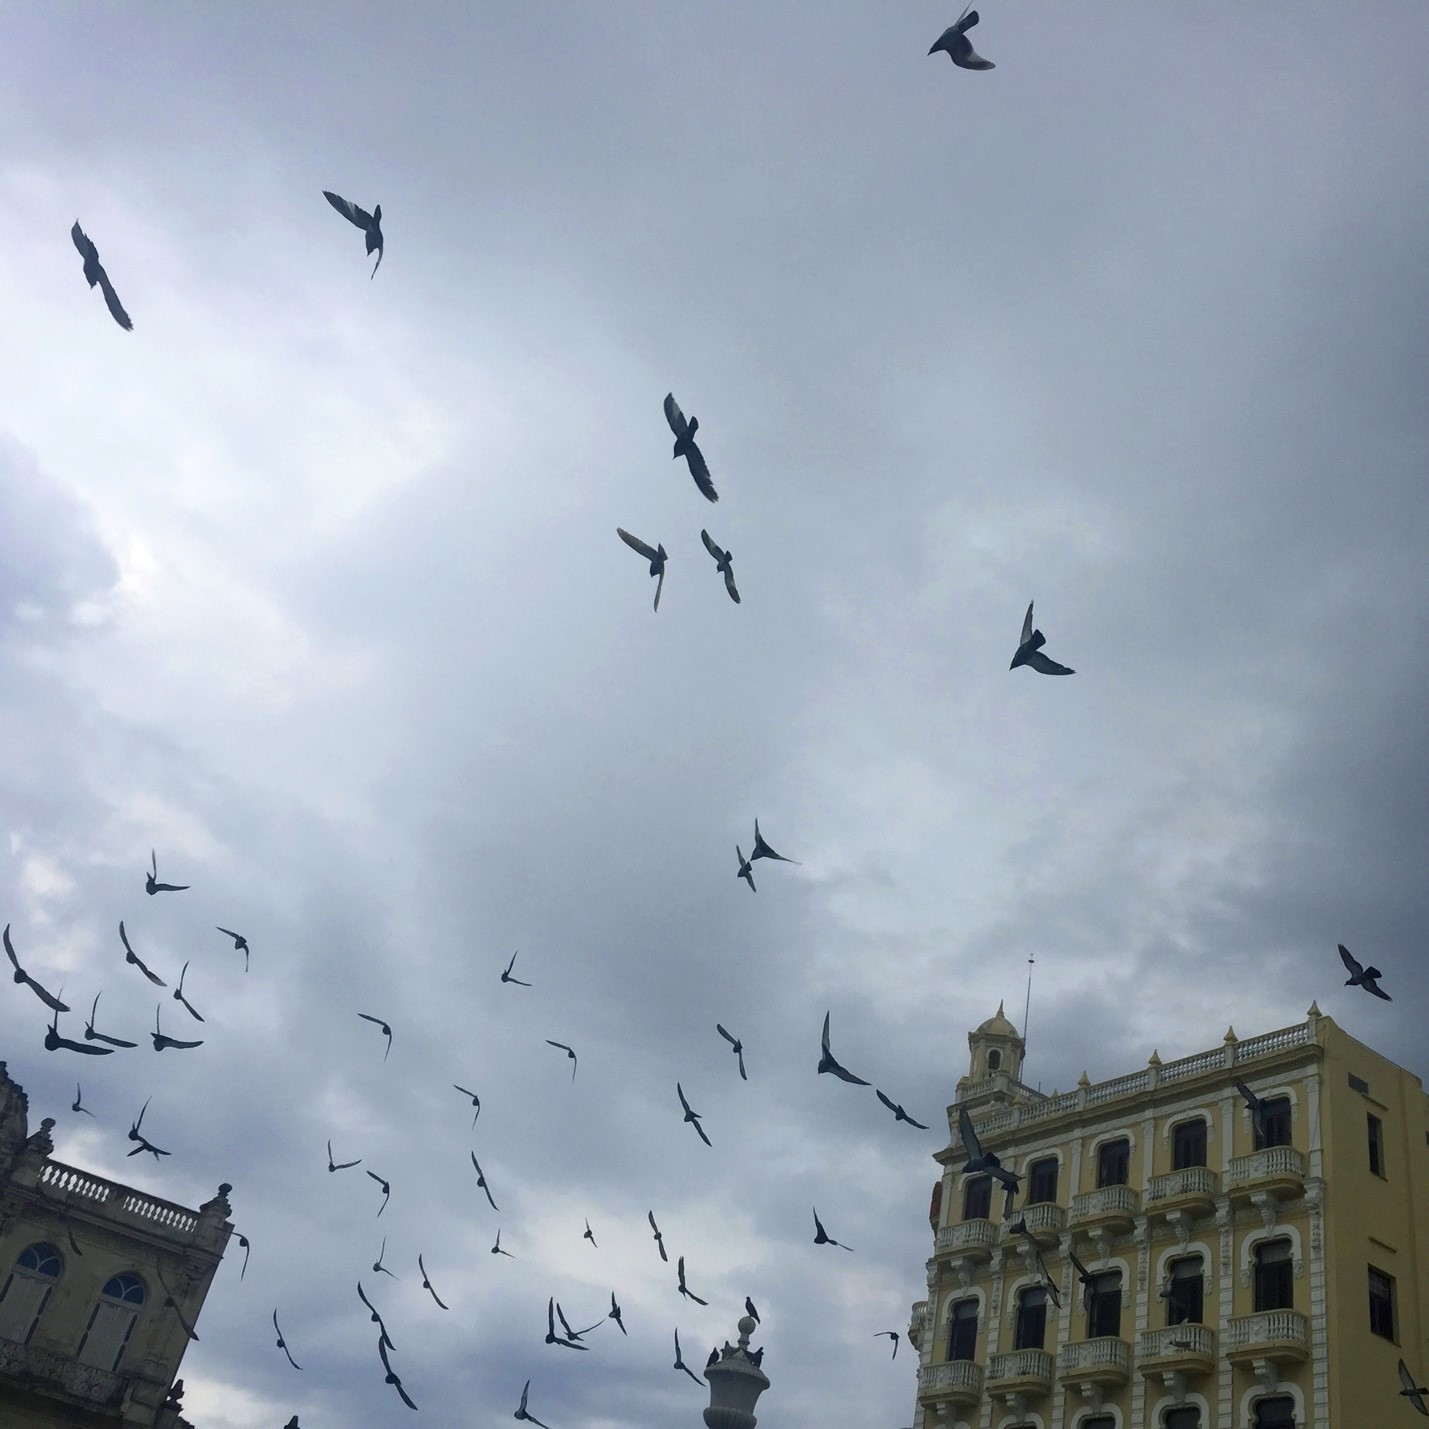 A flock of seagulls in the sky over a building in Havana